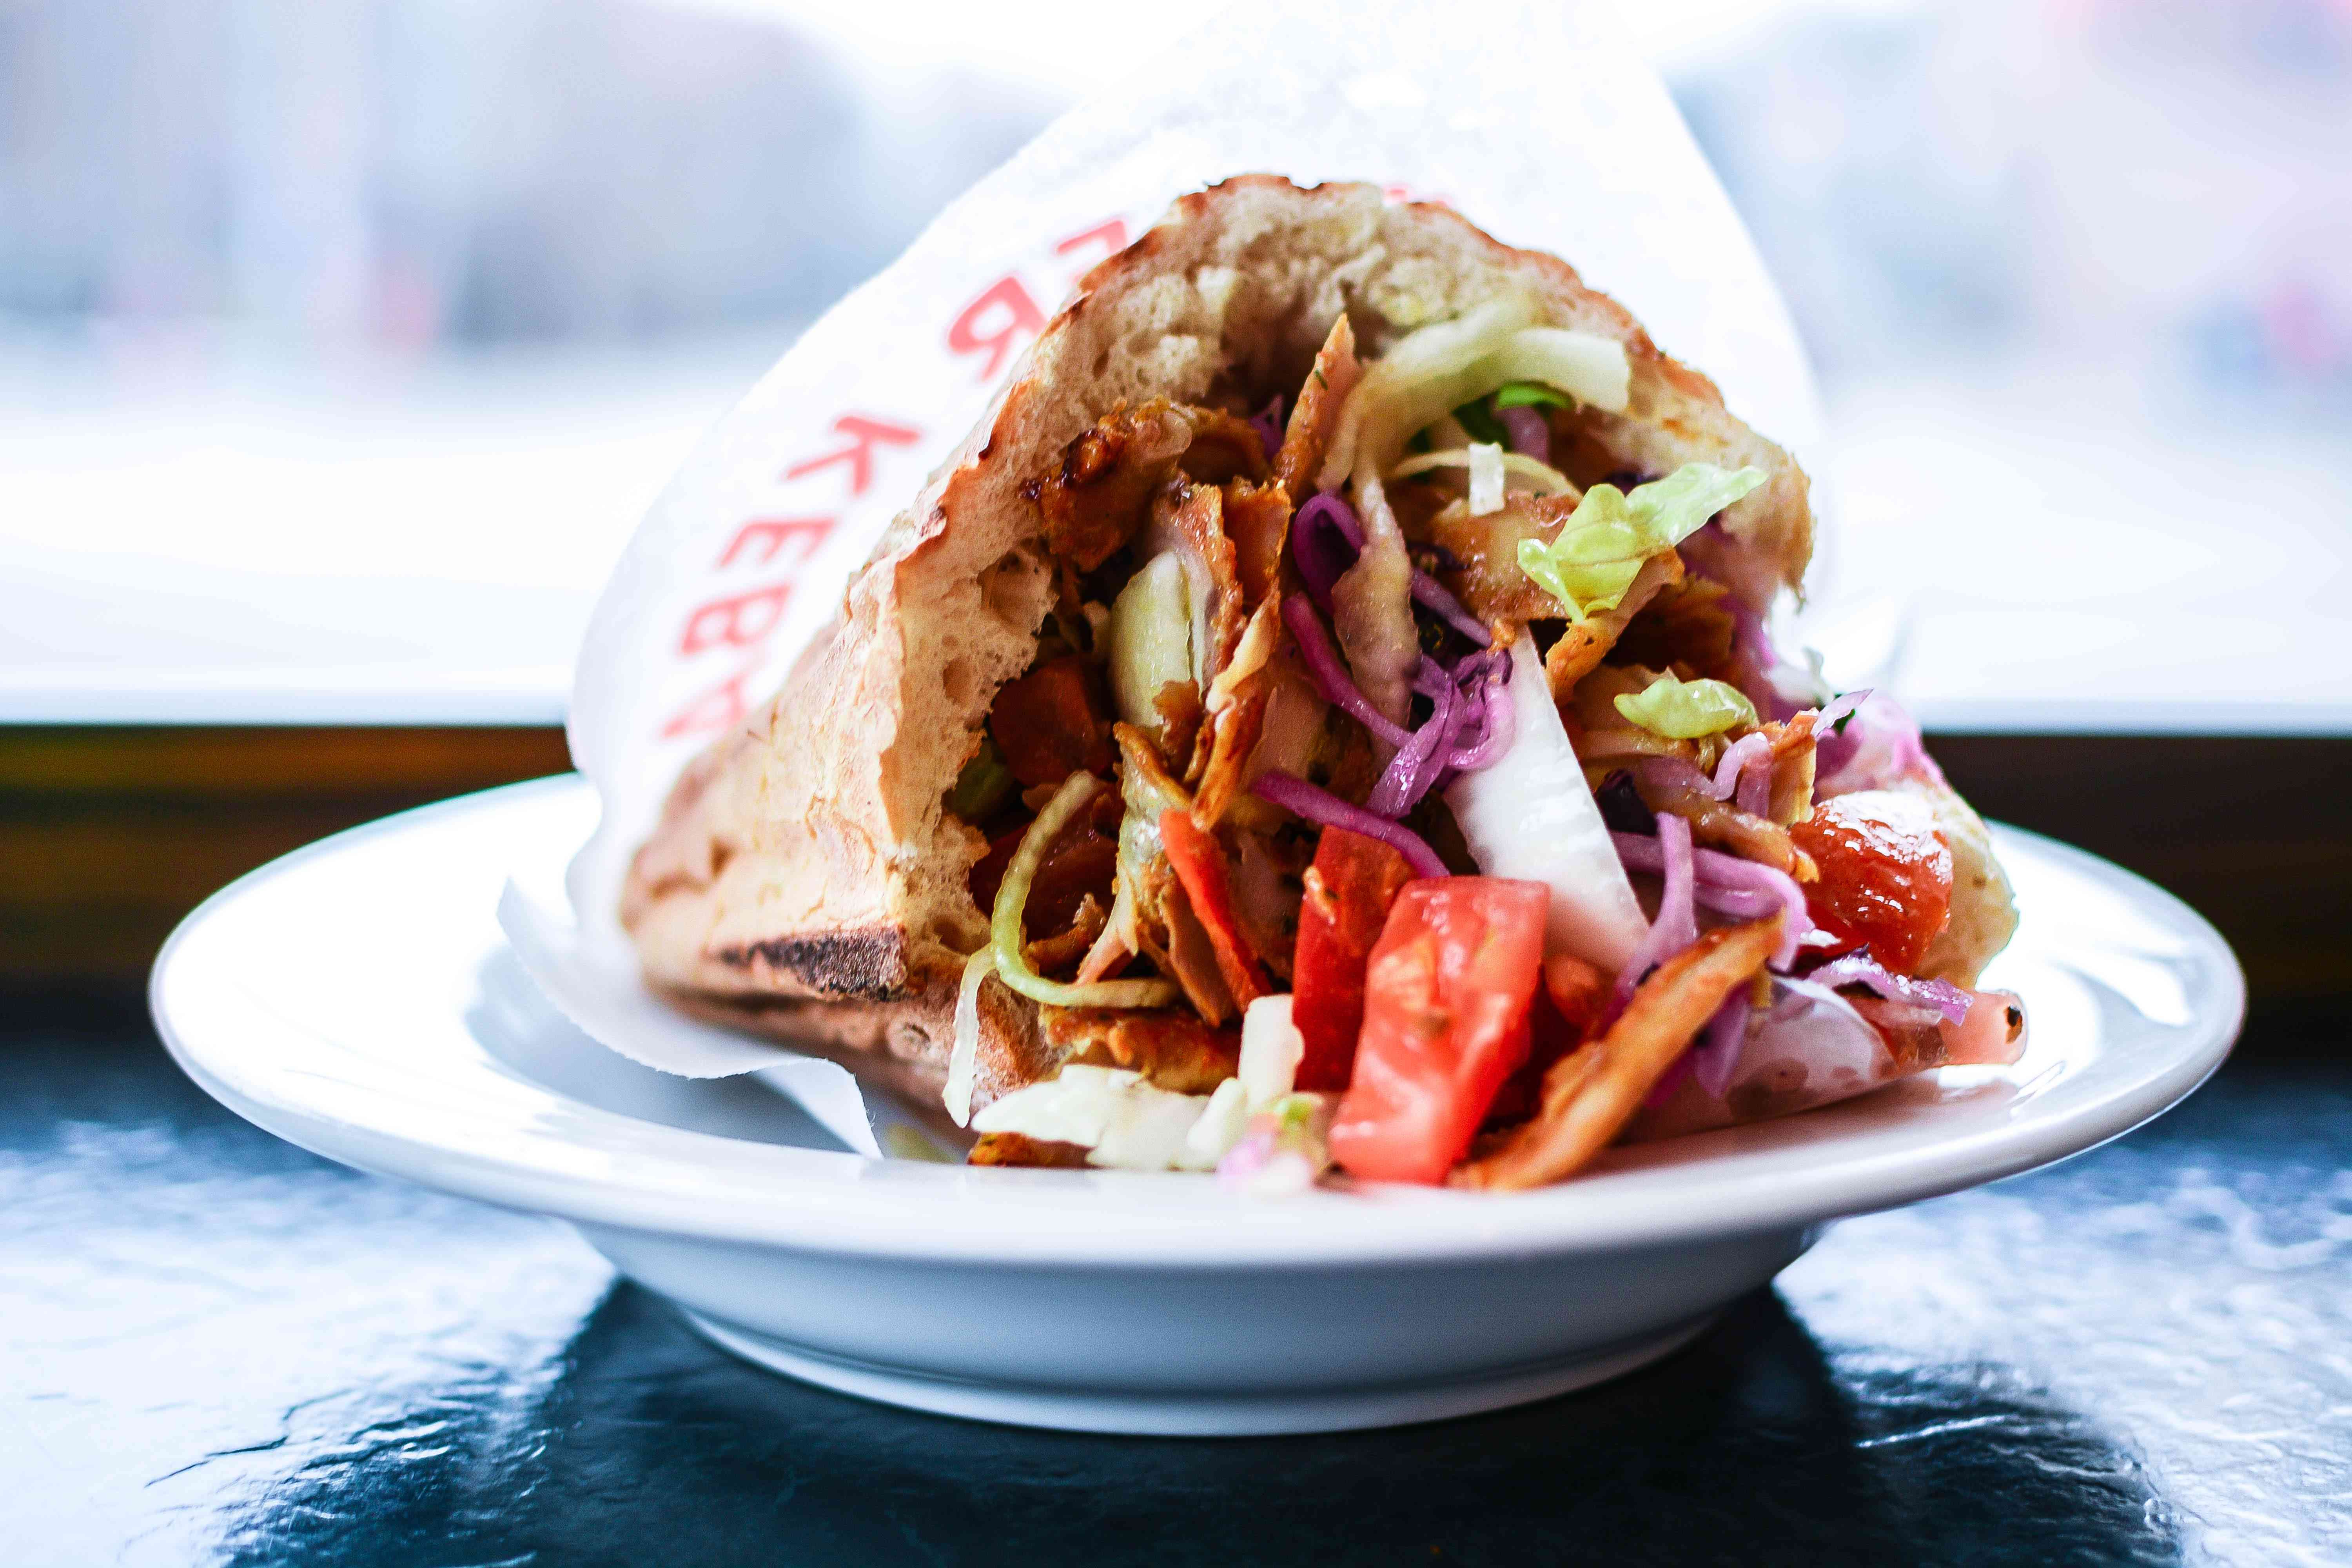 Close-Up Of Doner Kebab Served In Plate On Table